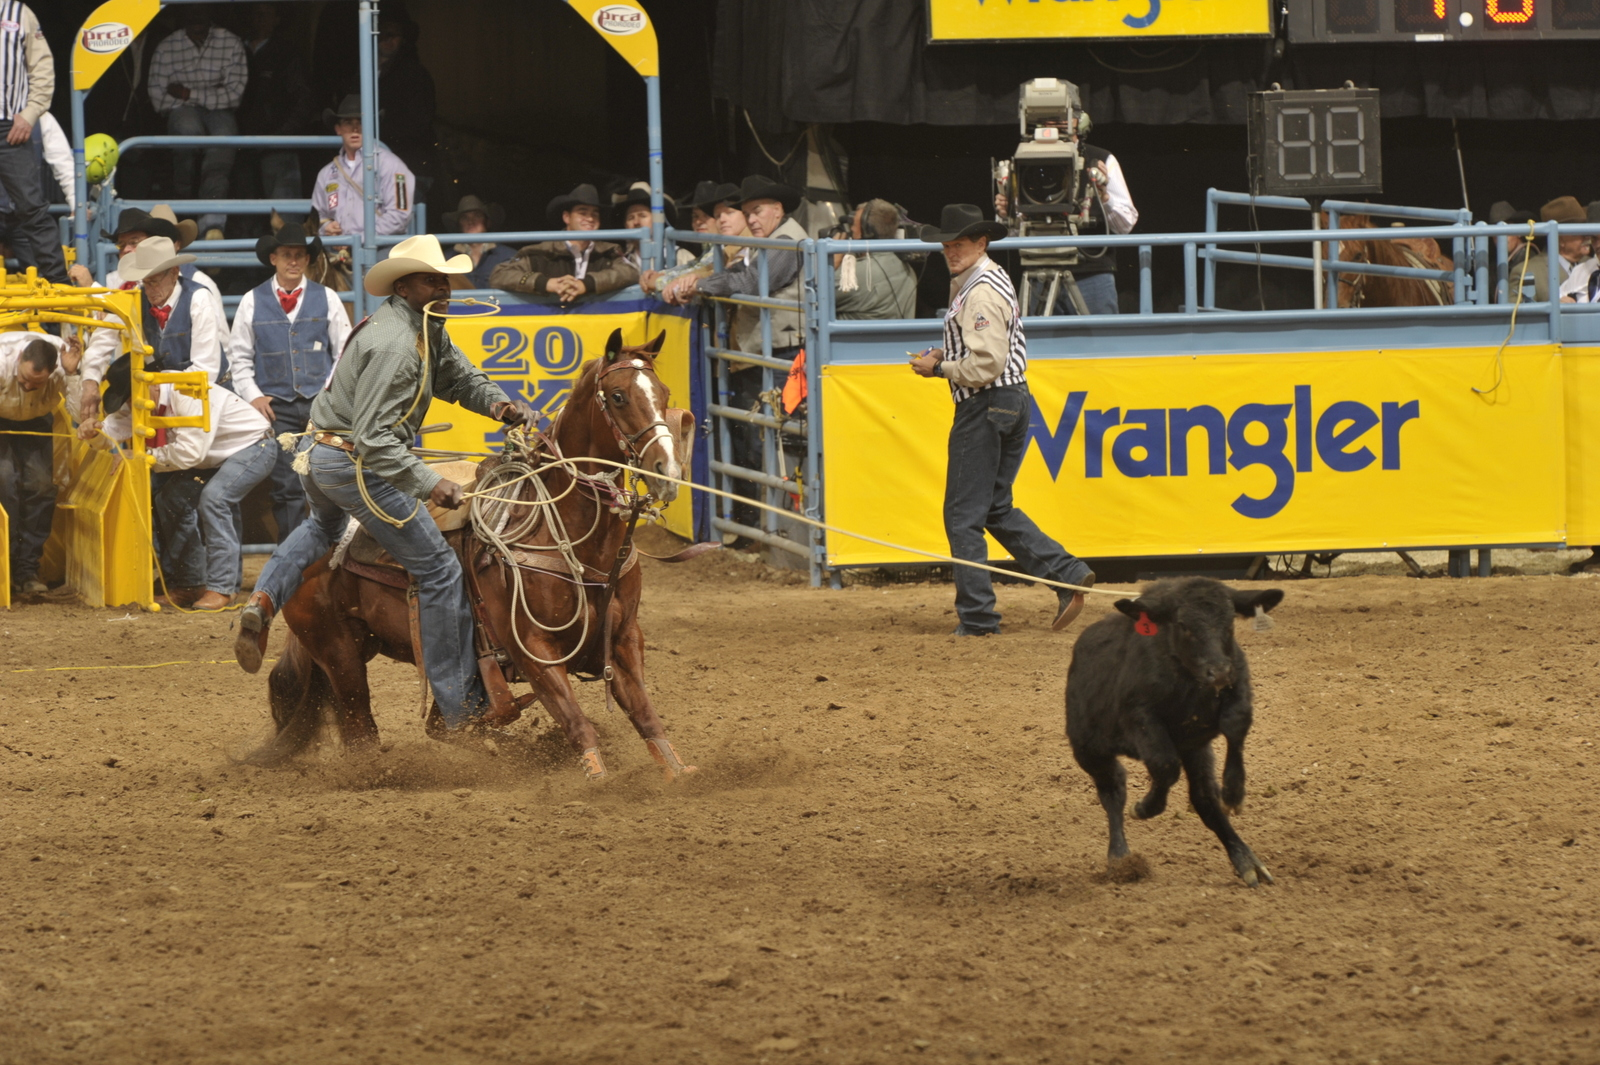 Whitfield Staying Strong Through Rough Patch Nfr Insider